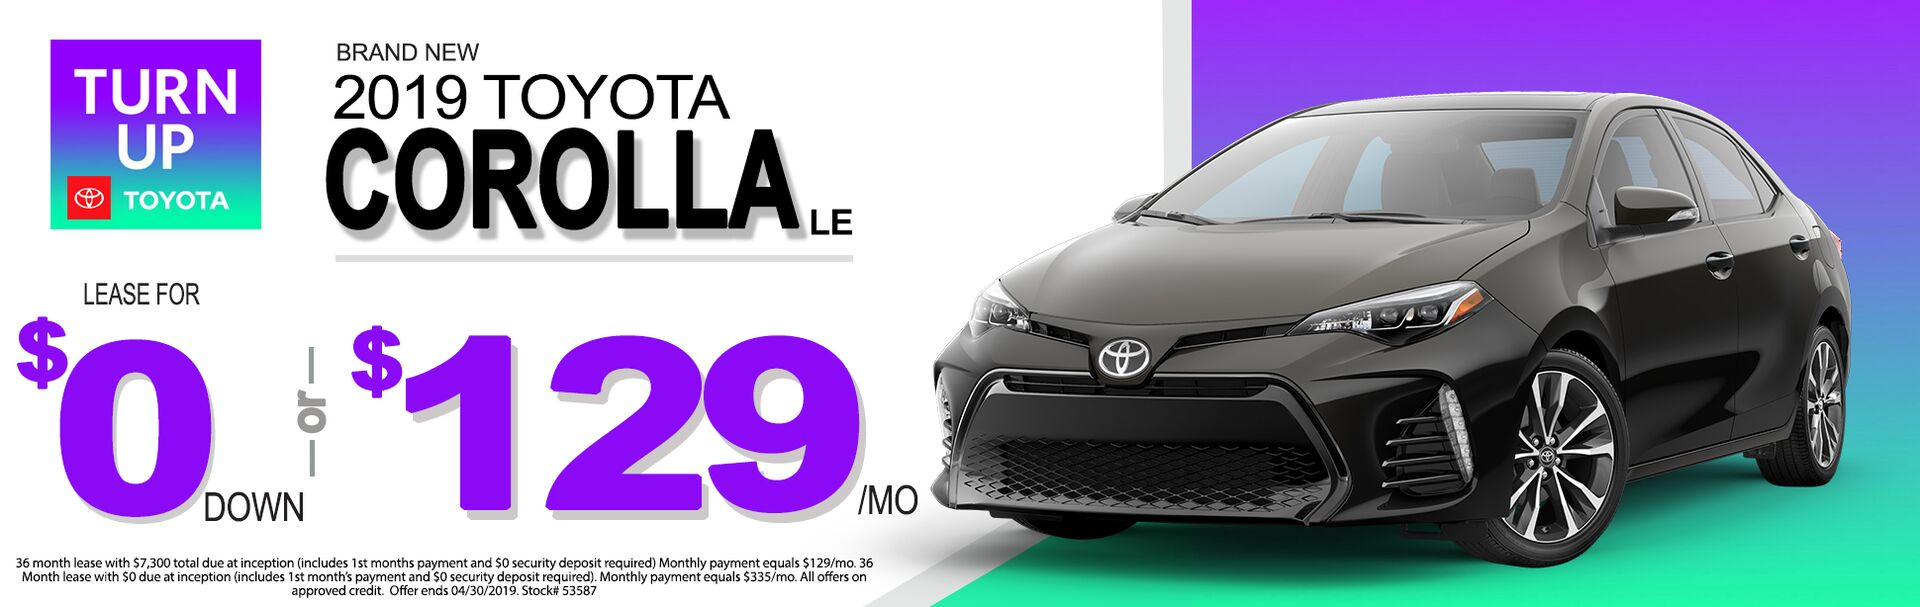 Corolla Lease Jan 2019